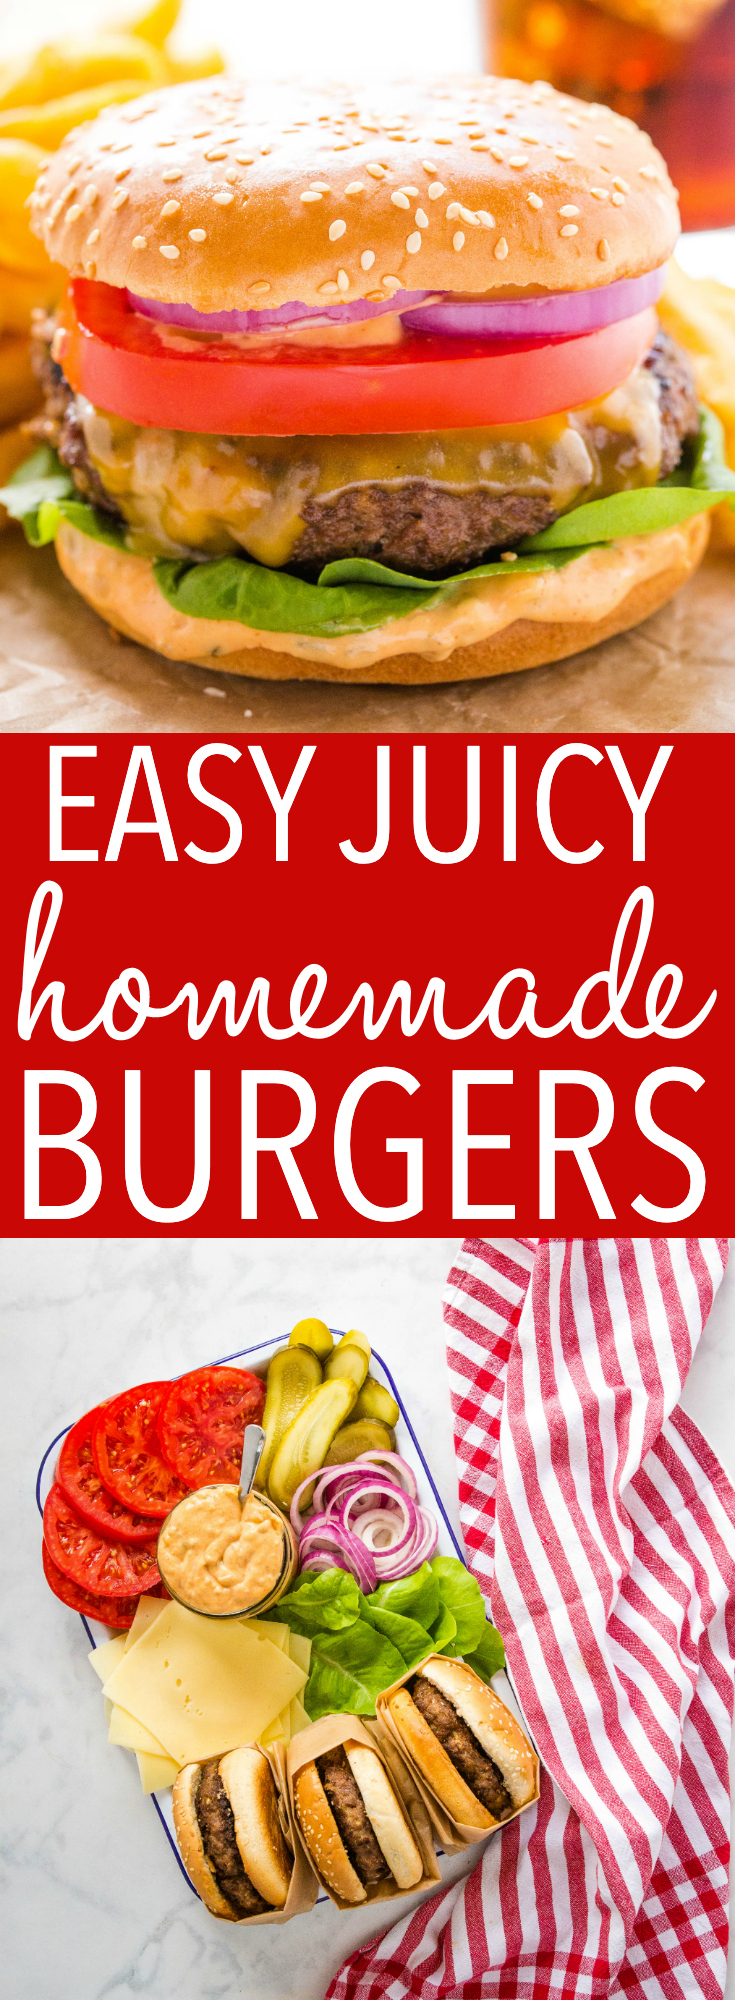 These Easy Juicy Homemade Burgers are tender, meaty, juicy, & SO easy to make with just a few basic ingredients! Plus pro tips for perfect homemade burgers! Recipe from thebusybaker.ca! #burgers #perfectburgers #protips #homemade #grilling #hamburgers #summer via @busybakerblog